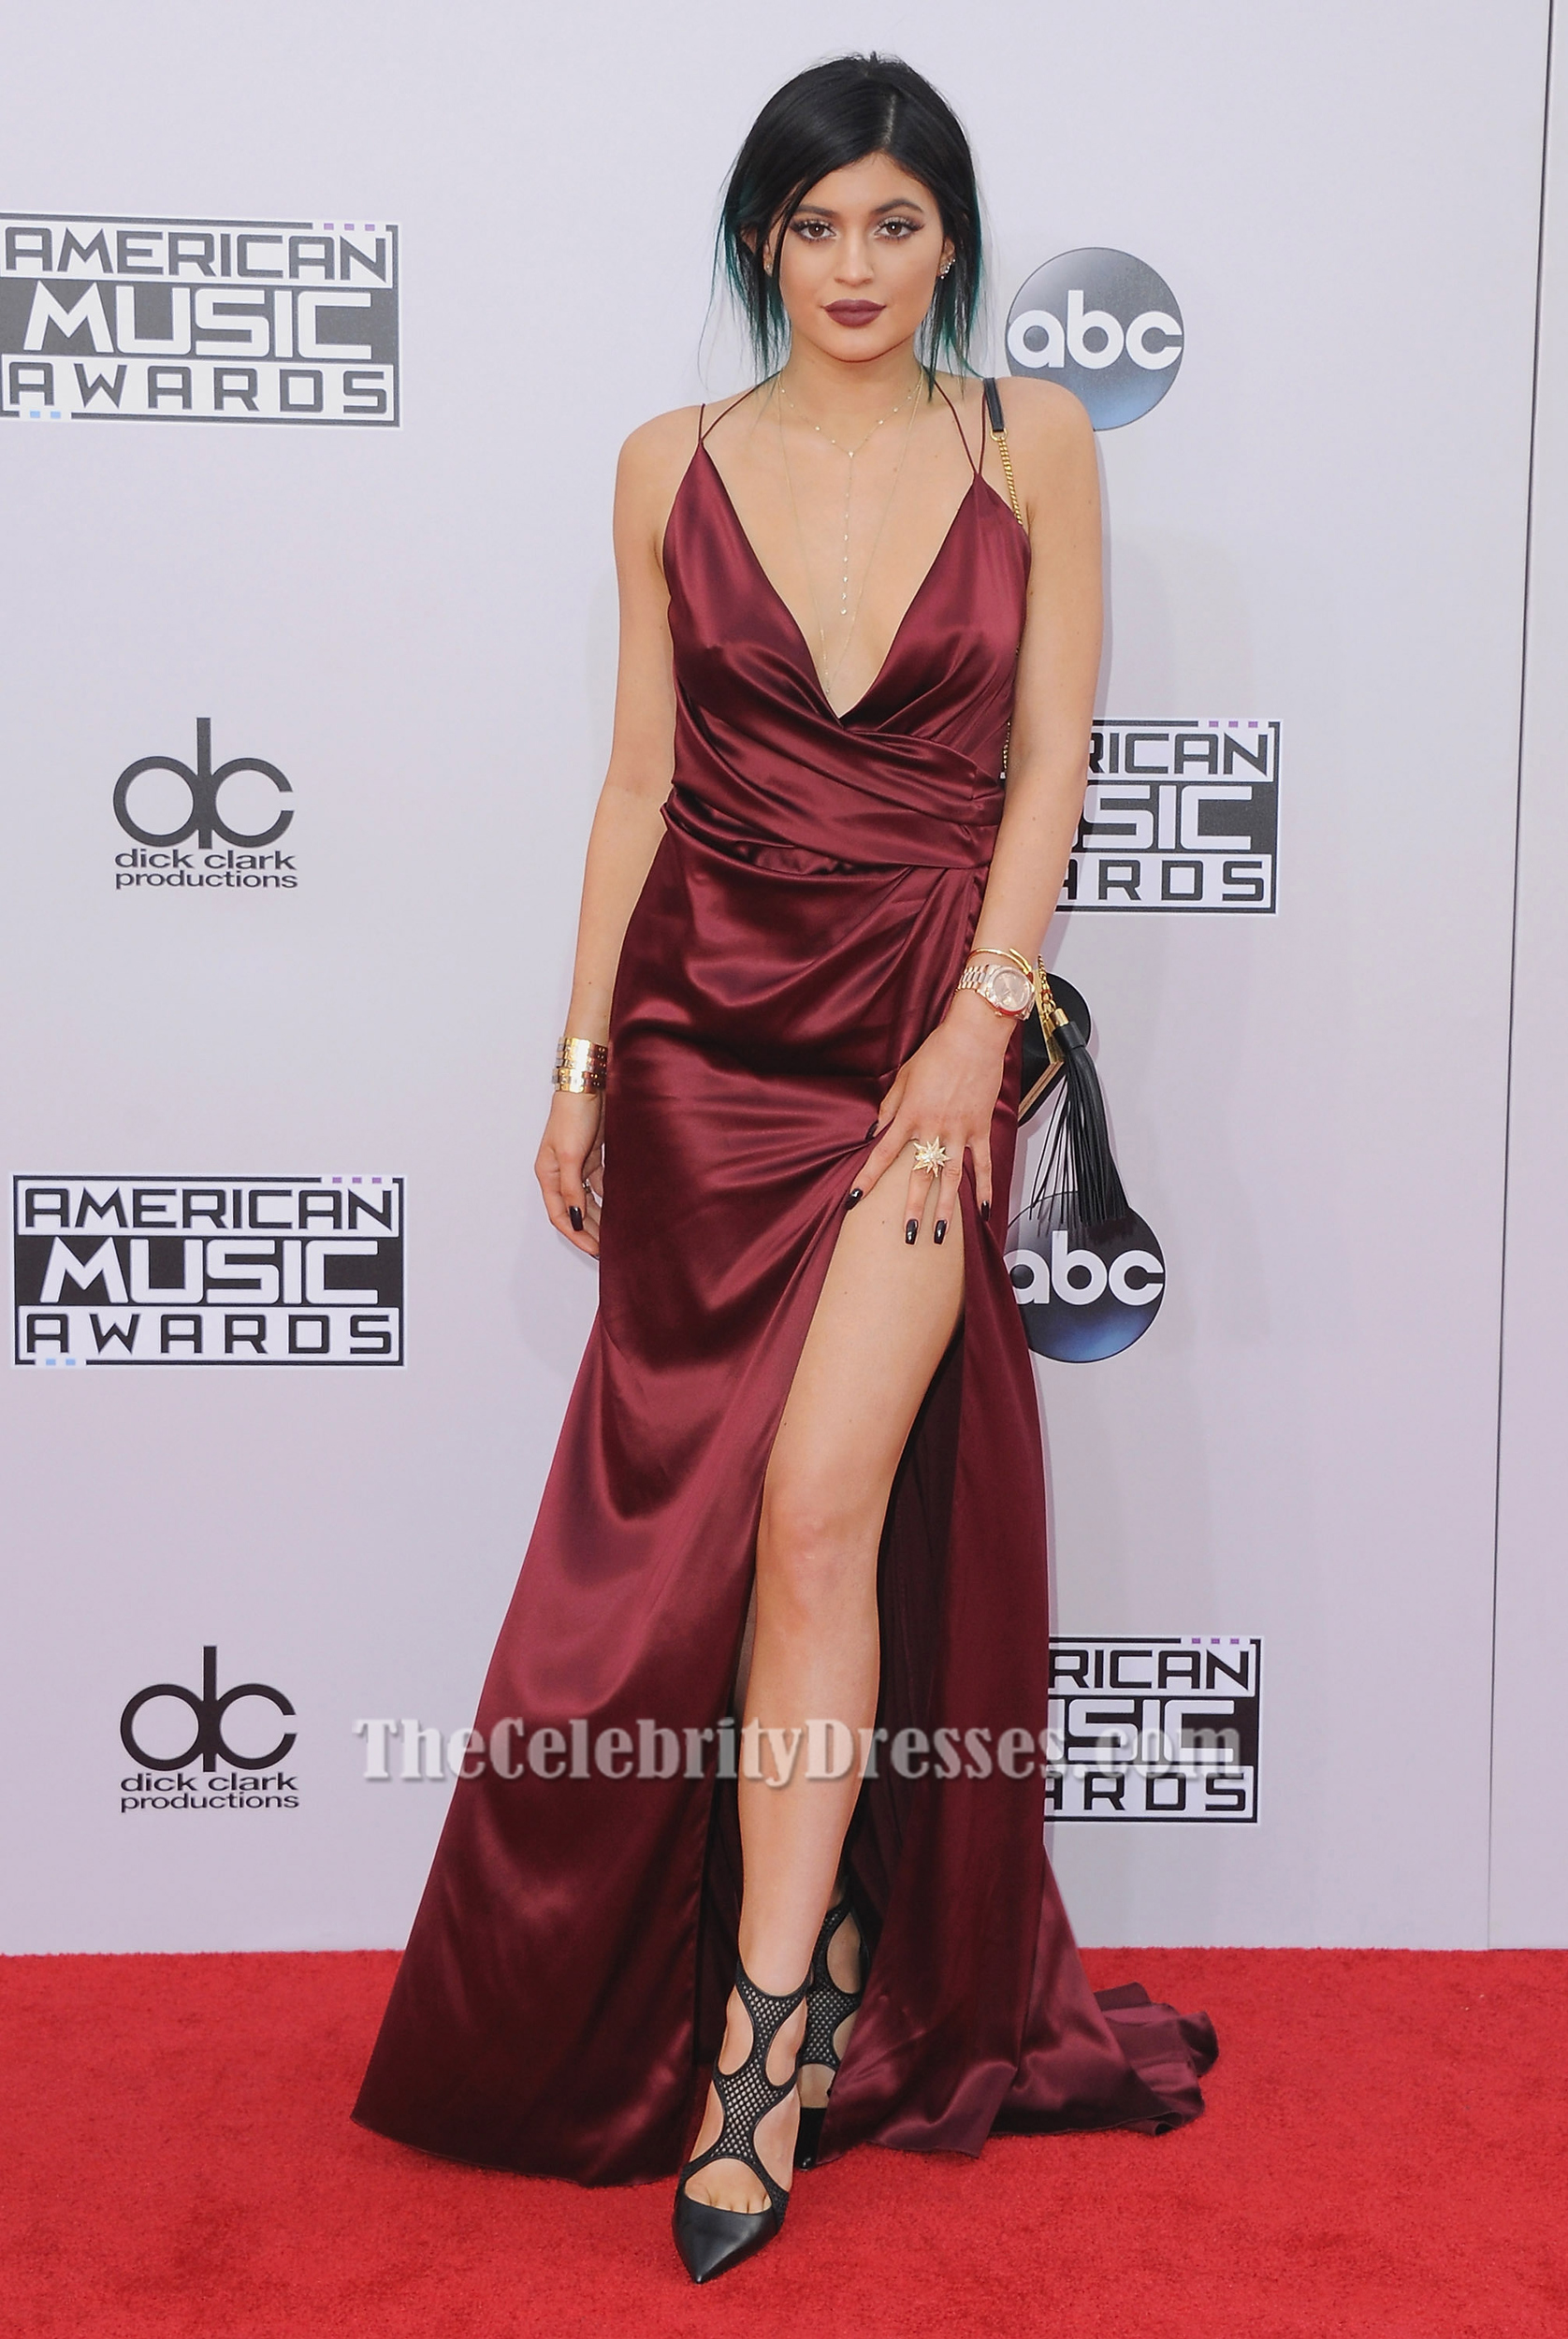 Kaufen Sie American Music Awards Red Carpet Kleider, Cheap Gown ...